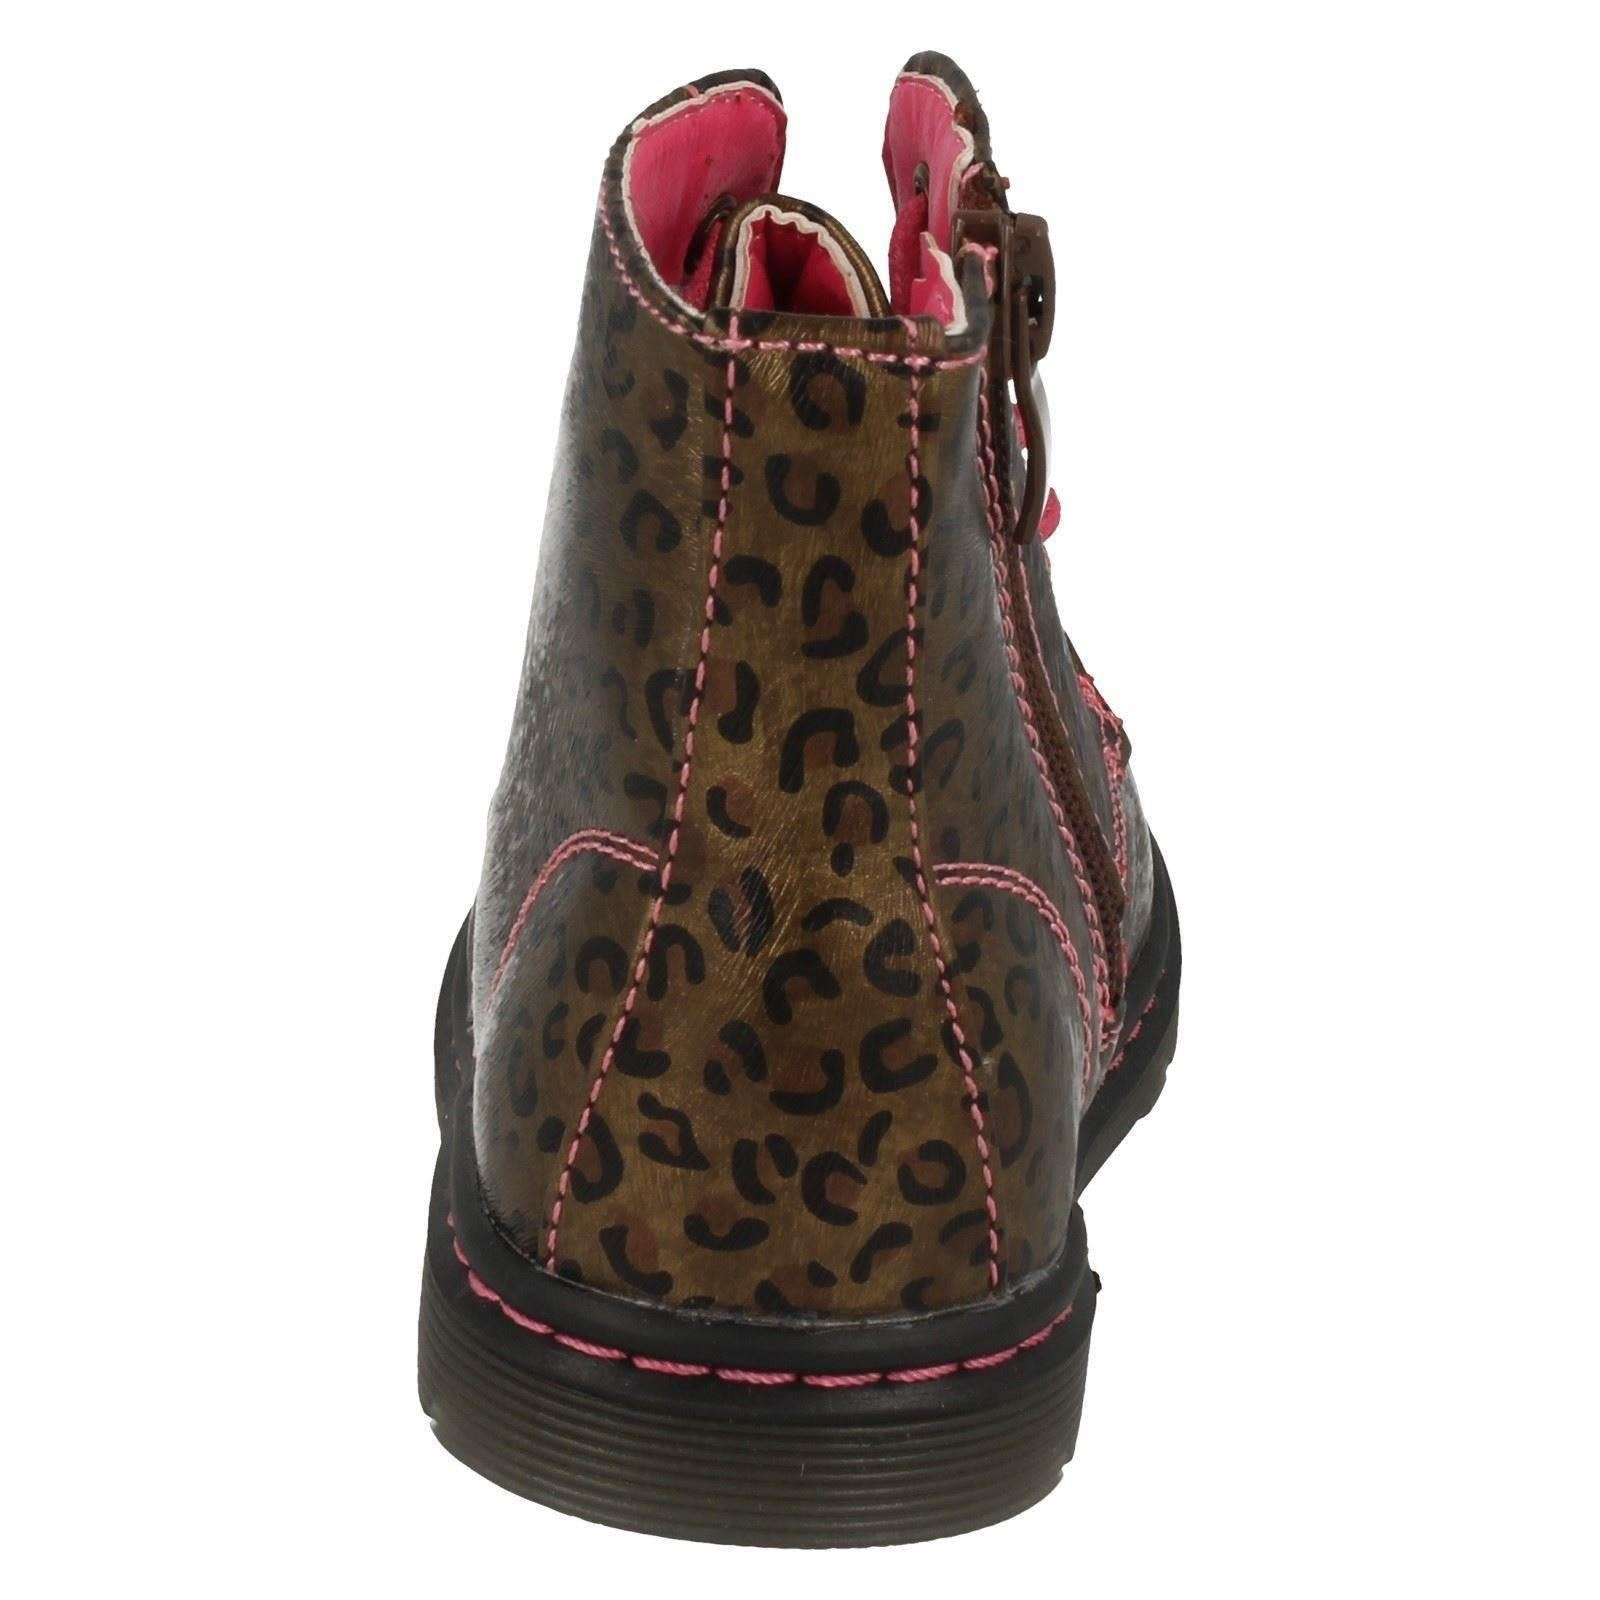 Toddler Infant Girls Spot On Funky Printed Lace Up Zip Chunky Ankle Boots H4109